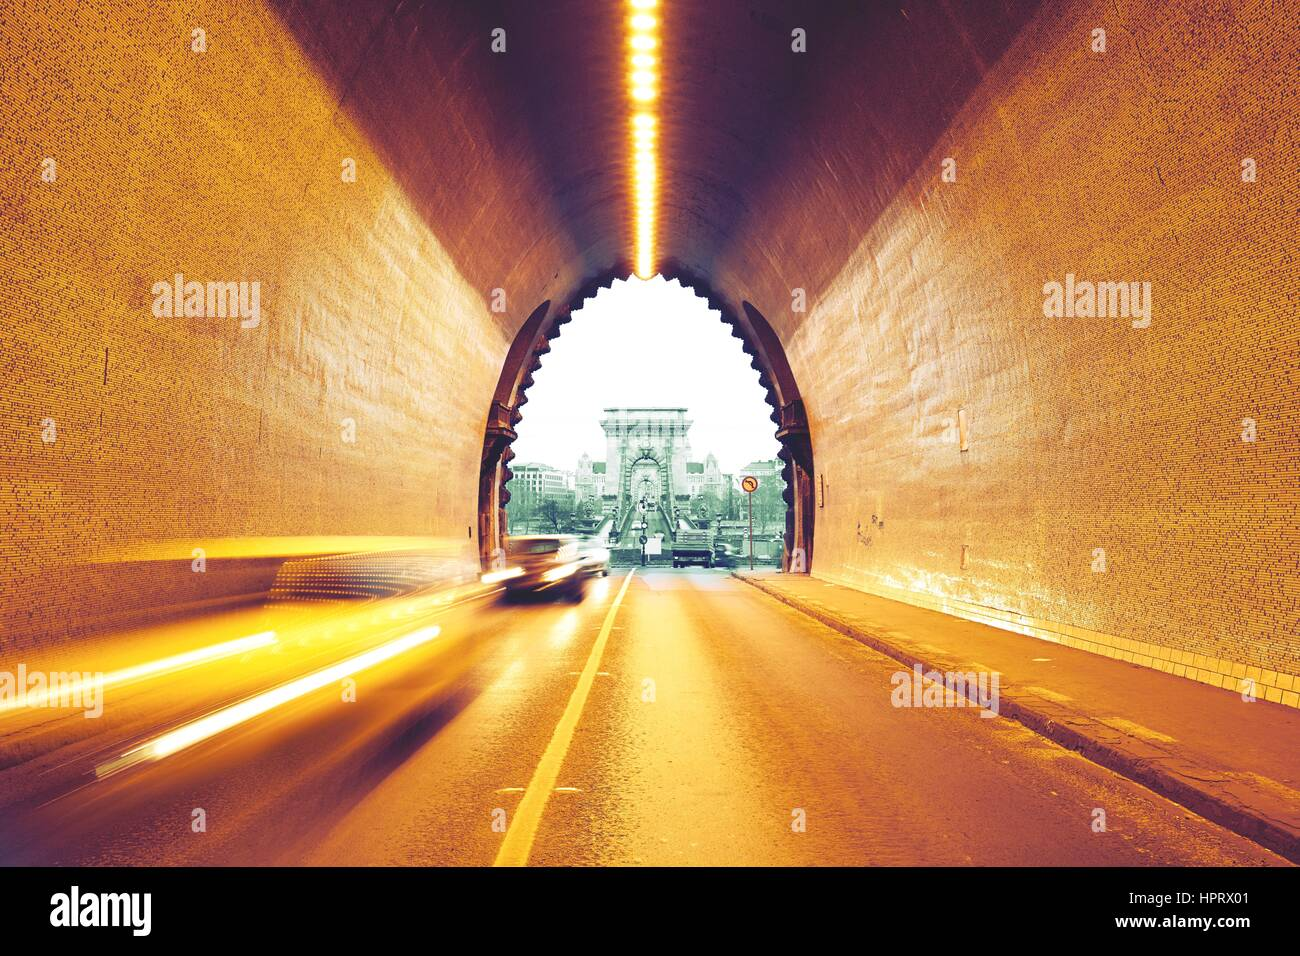 Traffic in urban tunnel - Budapest, Hungary - Stock Image